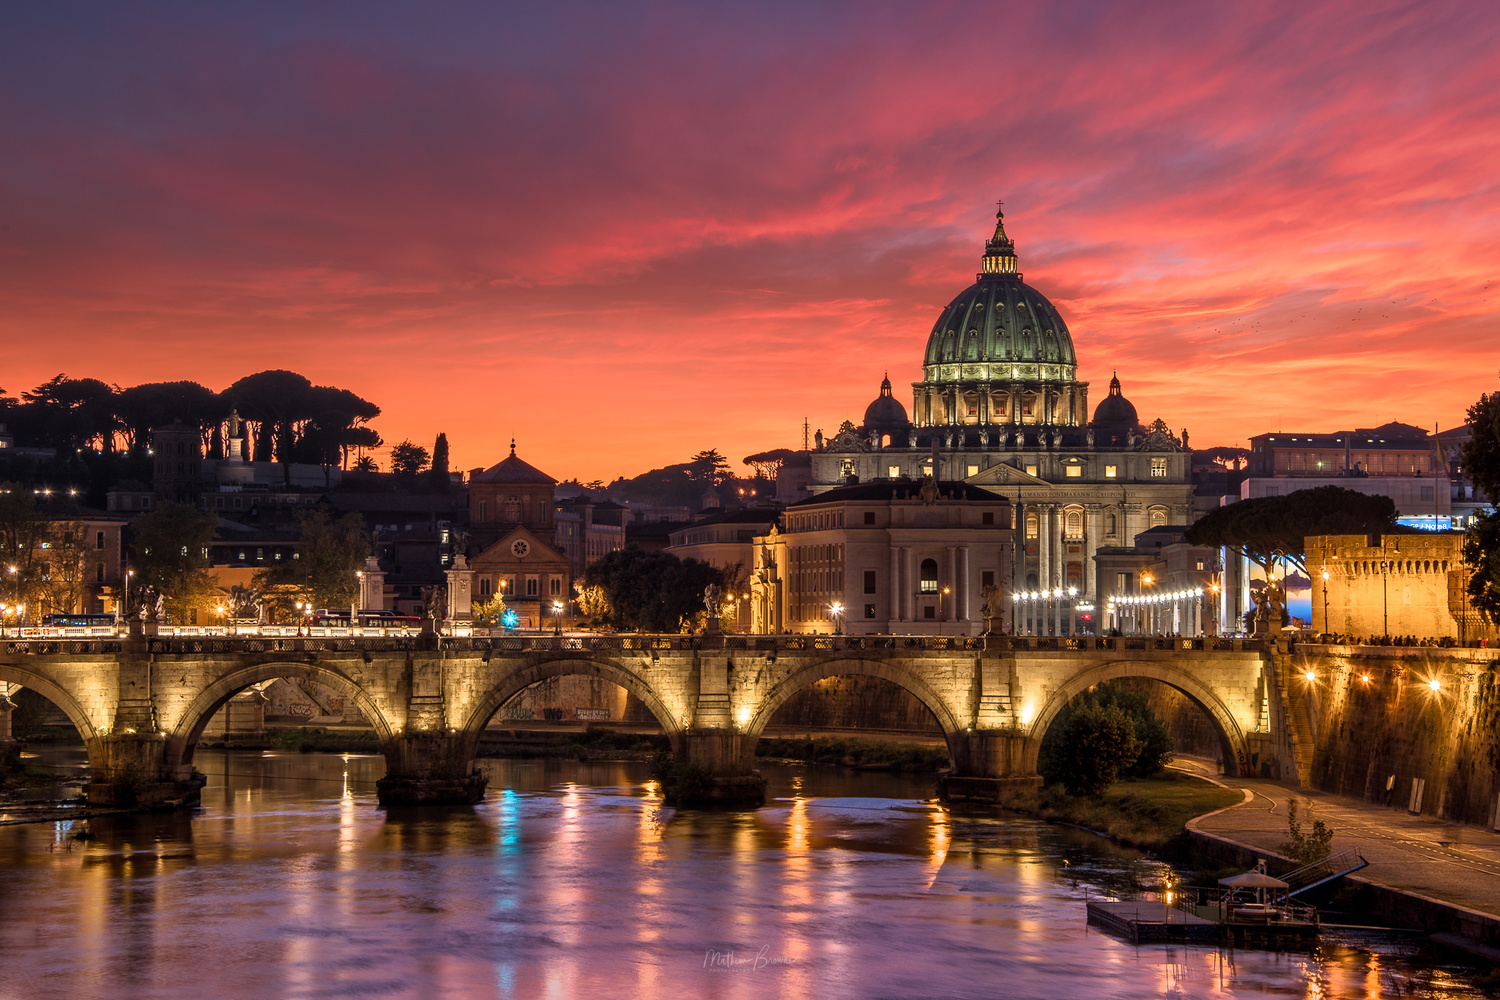 While Rome Burns by Mathew Browne